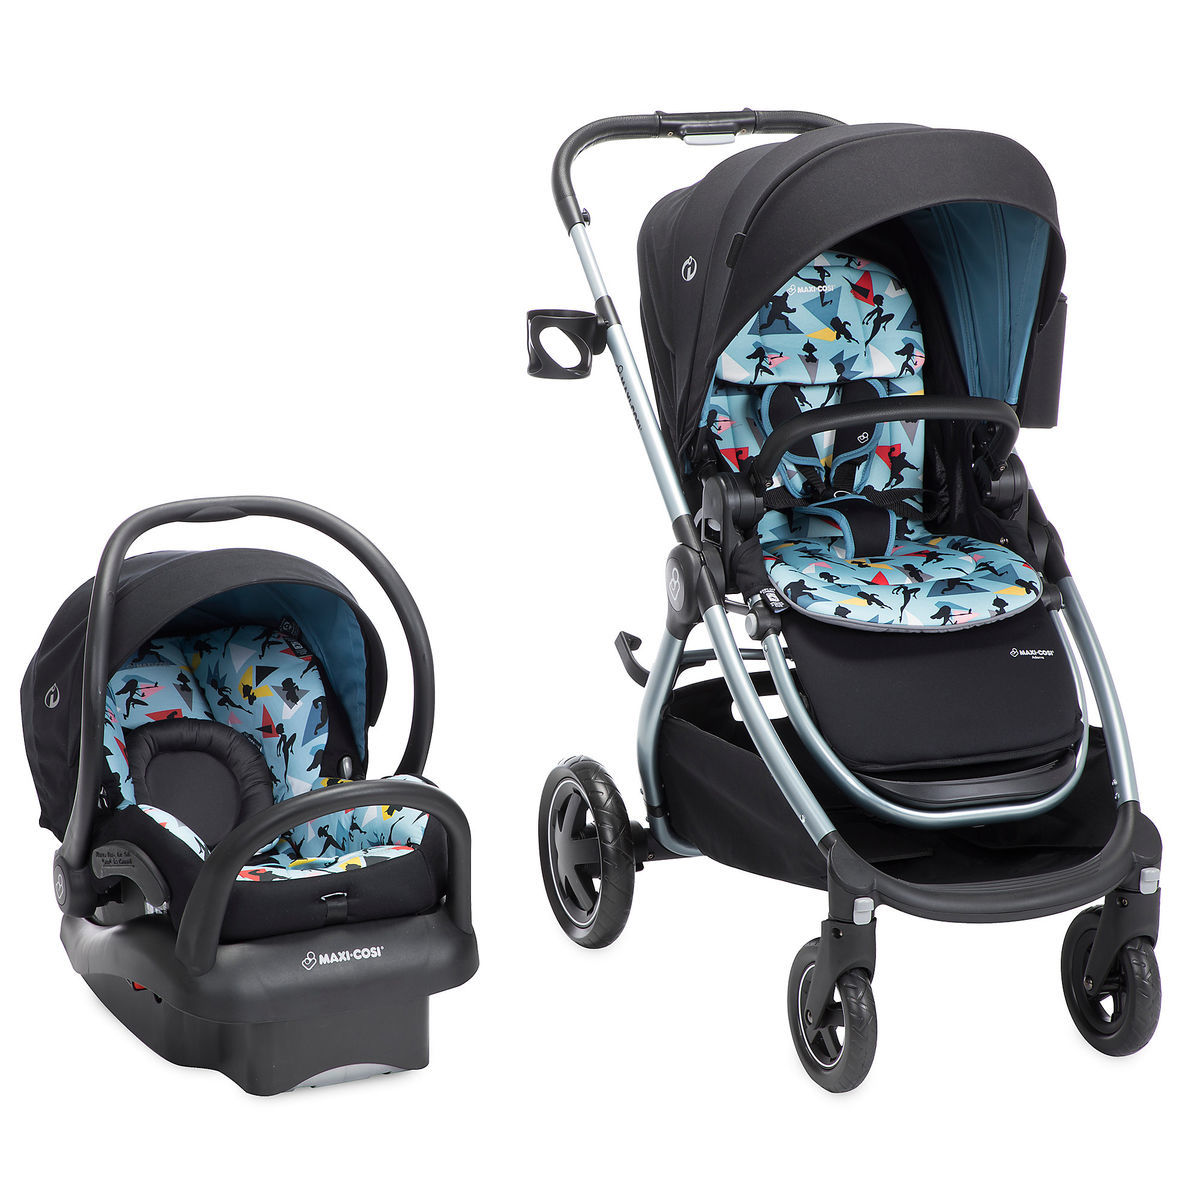 Product Image Of Incredibles 2 Modular Car Seat And Stroller Travel System By Maxi Cosi